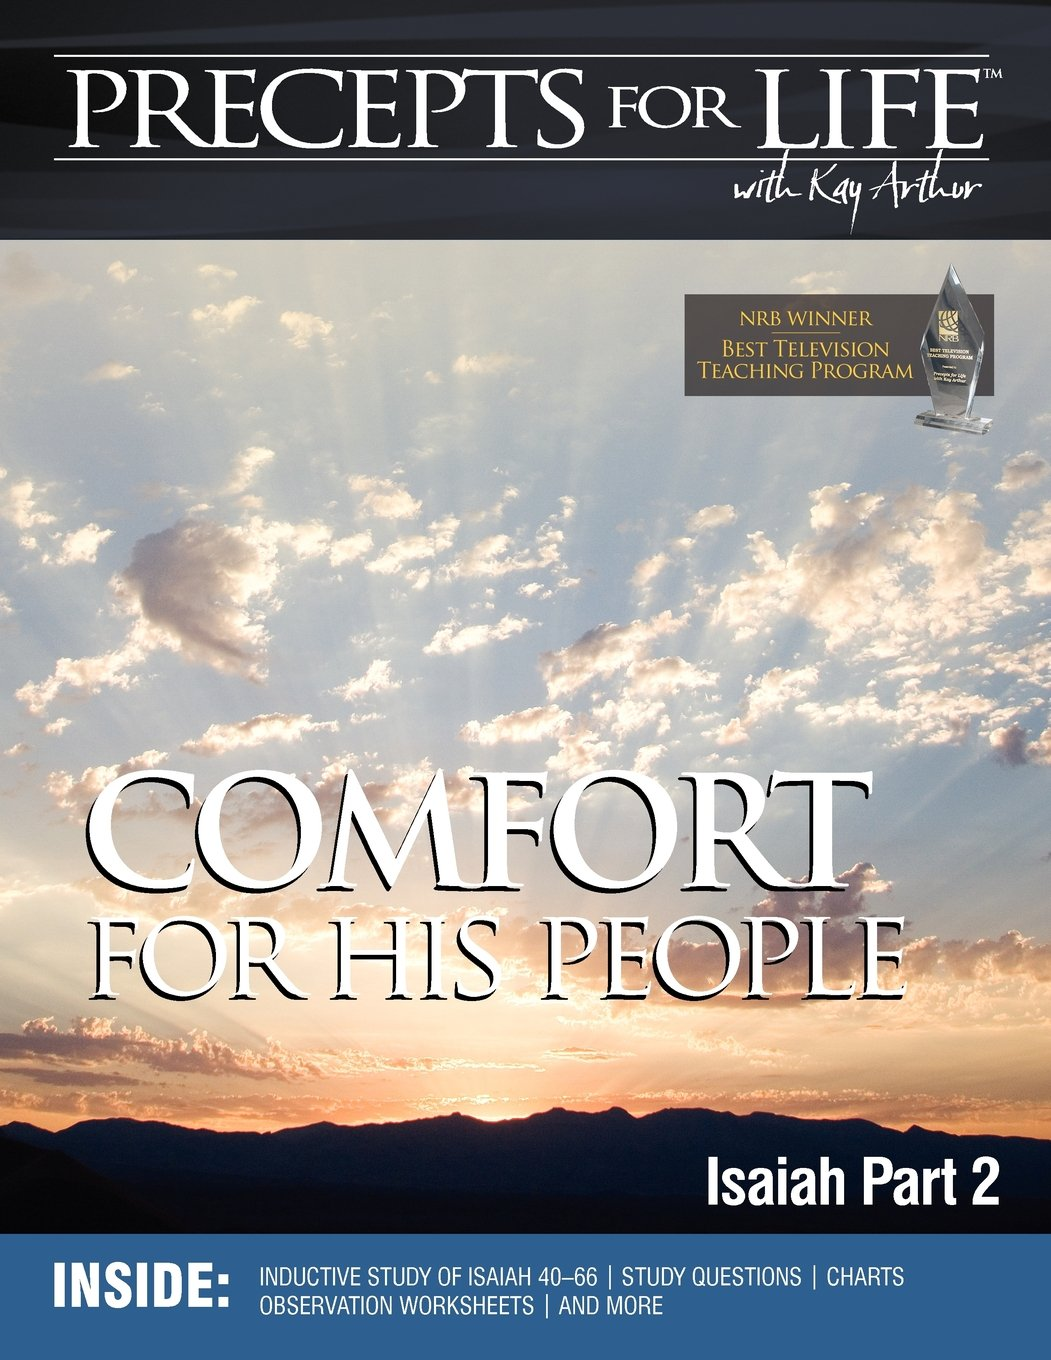 Download Precepts For Life Study Companion: Comfort For His People (Isaiah Part 2) pdf epub